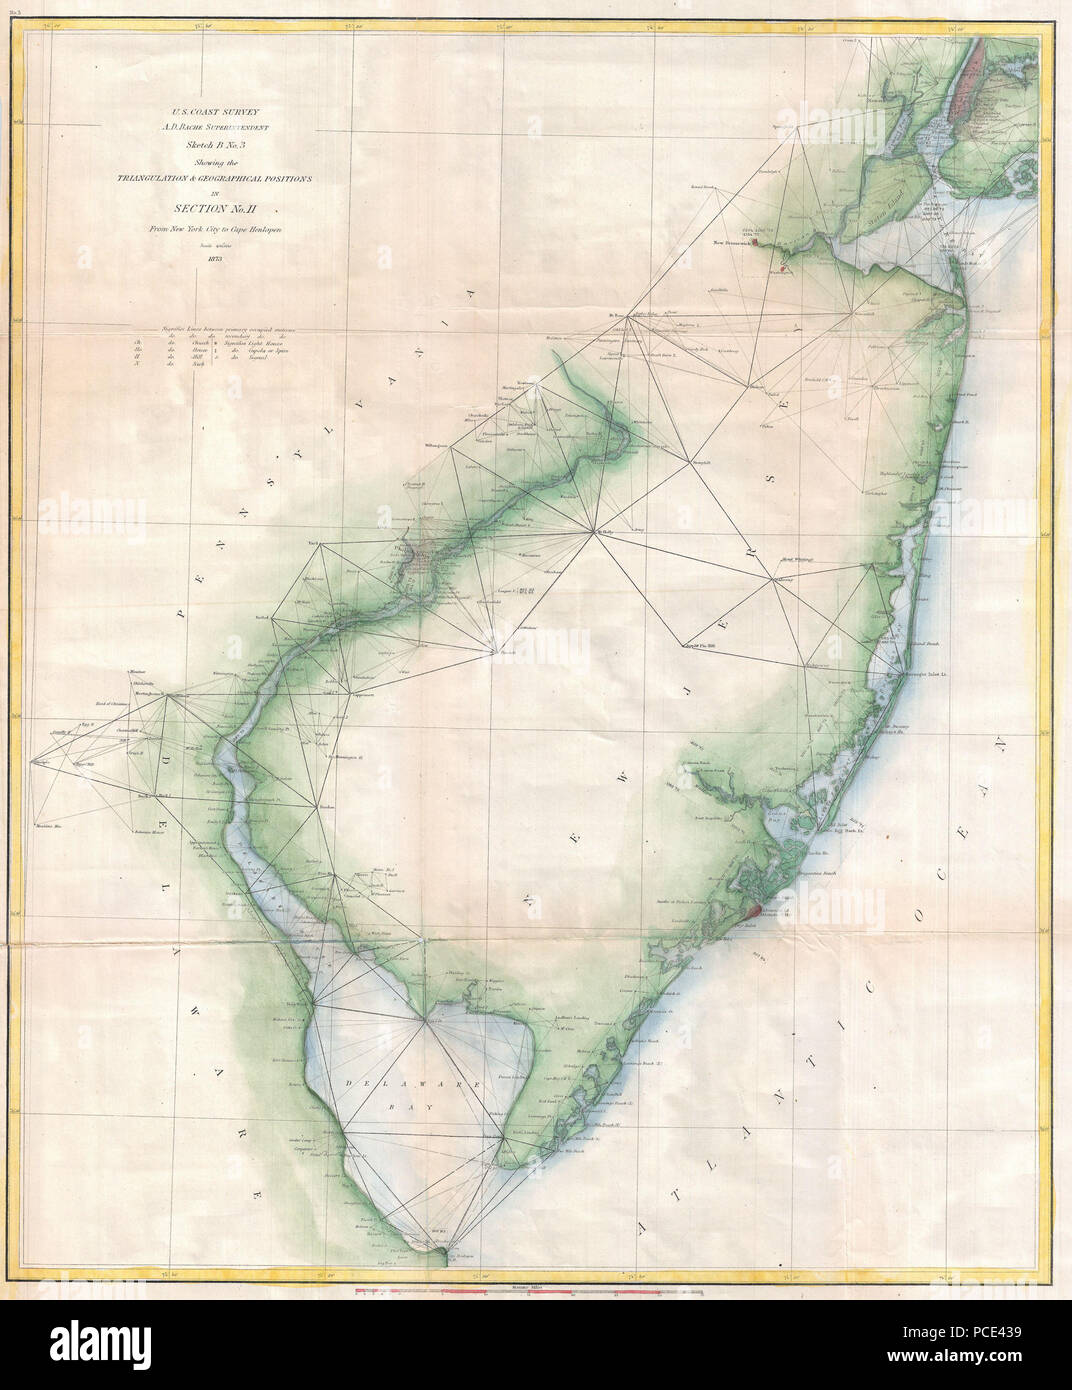 10 1873 U.S. Coast Survey Chart or Map of New Jersey and the Delaware Bay - Geographicus - NewJersey-uscs-1873 - Stock Image